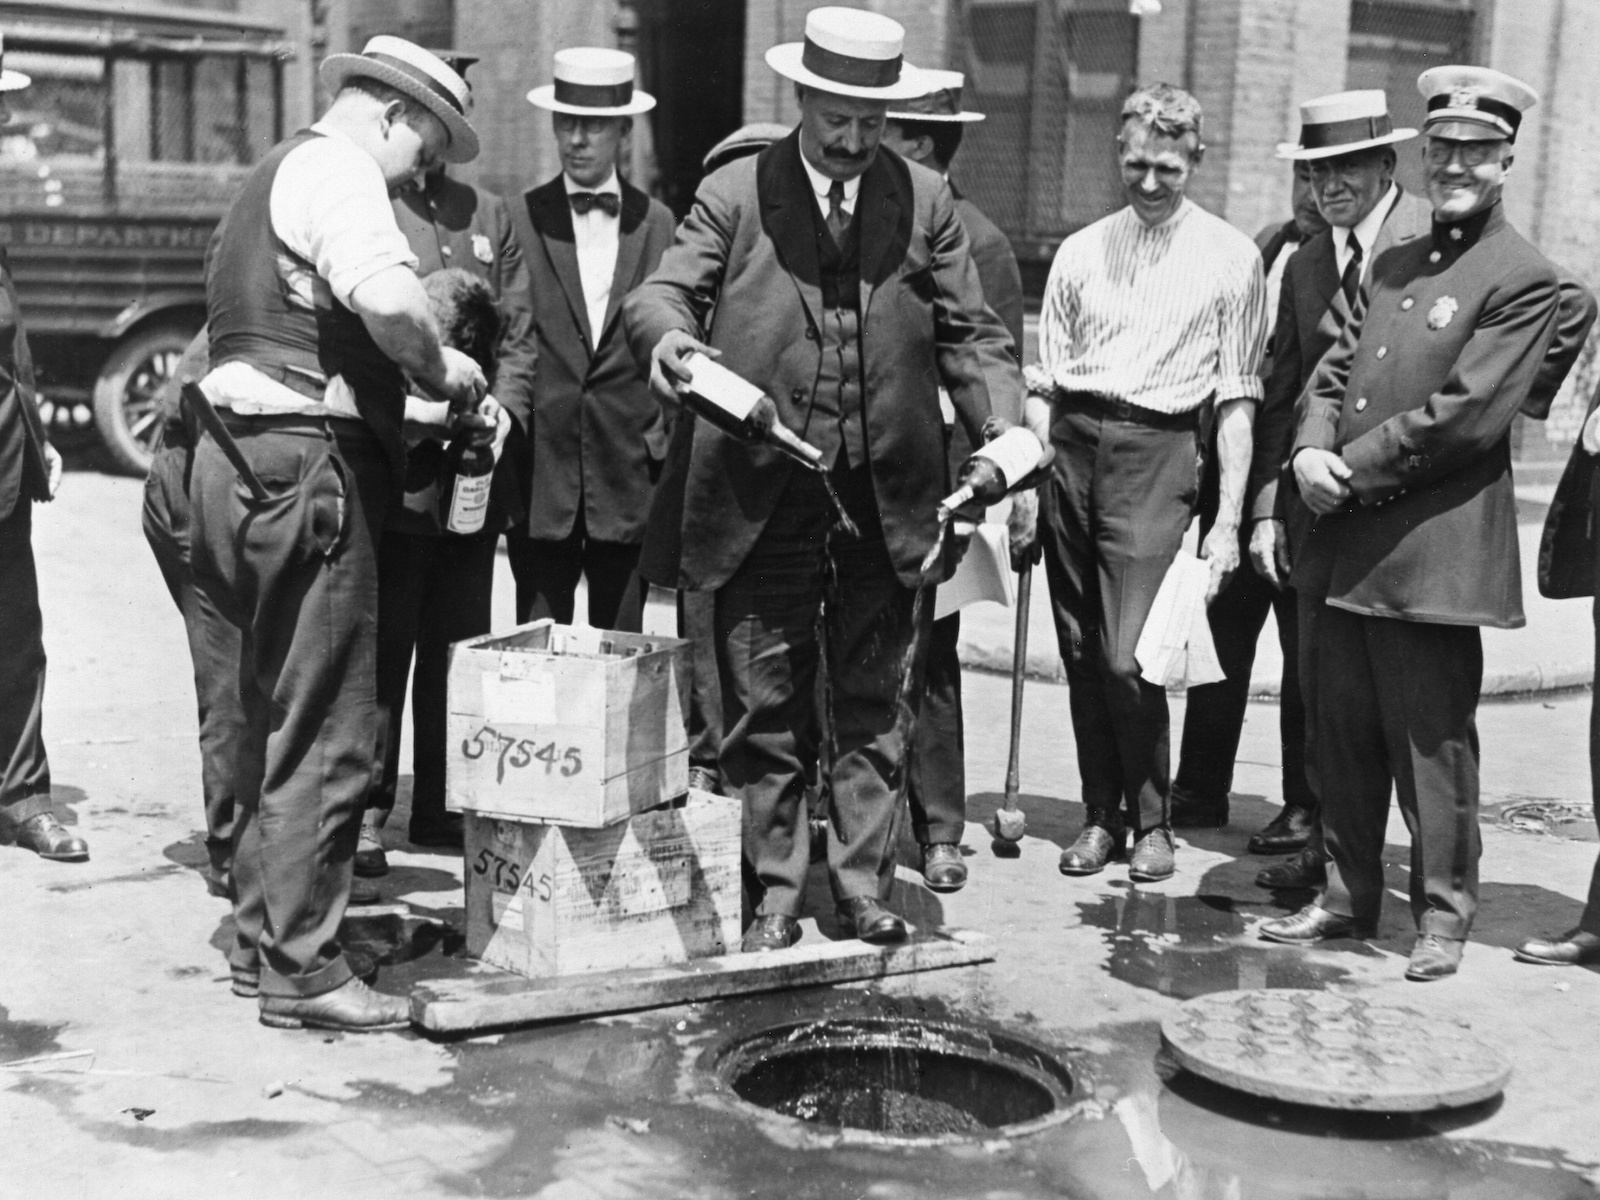 Prohibition Still Impacts What We Drink 100 Years Later